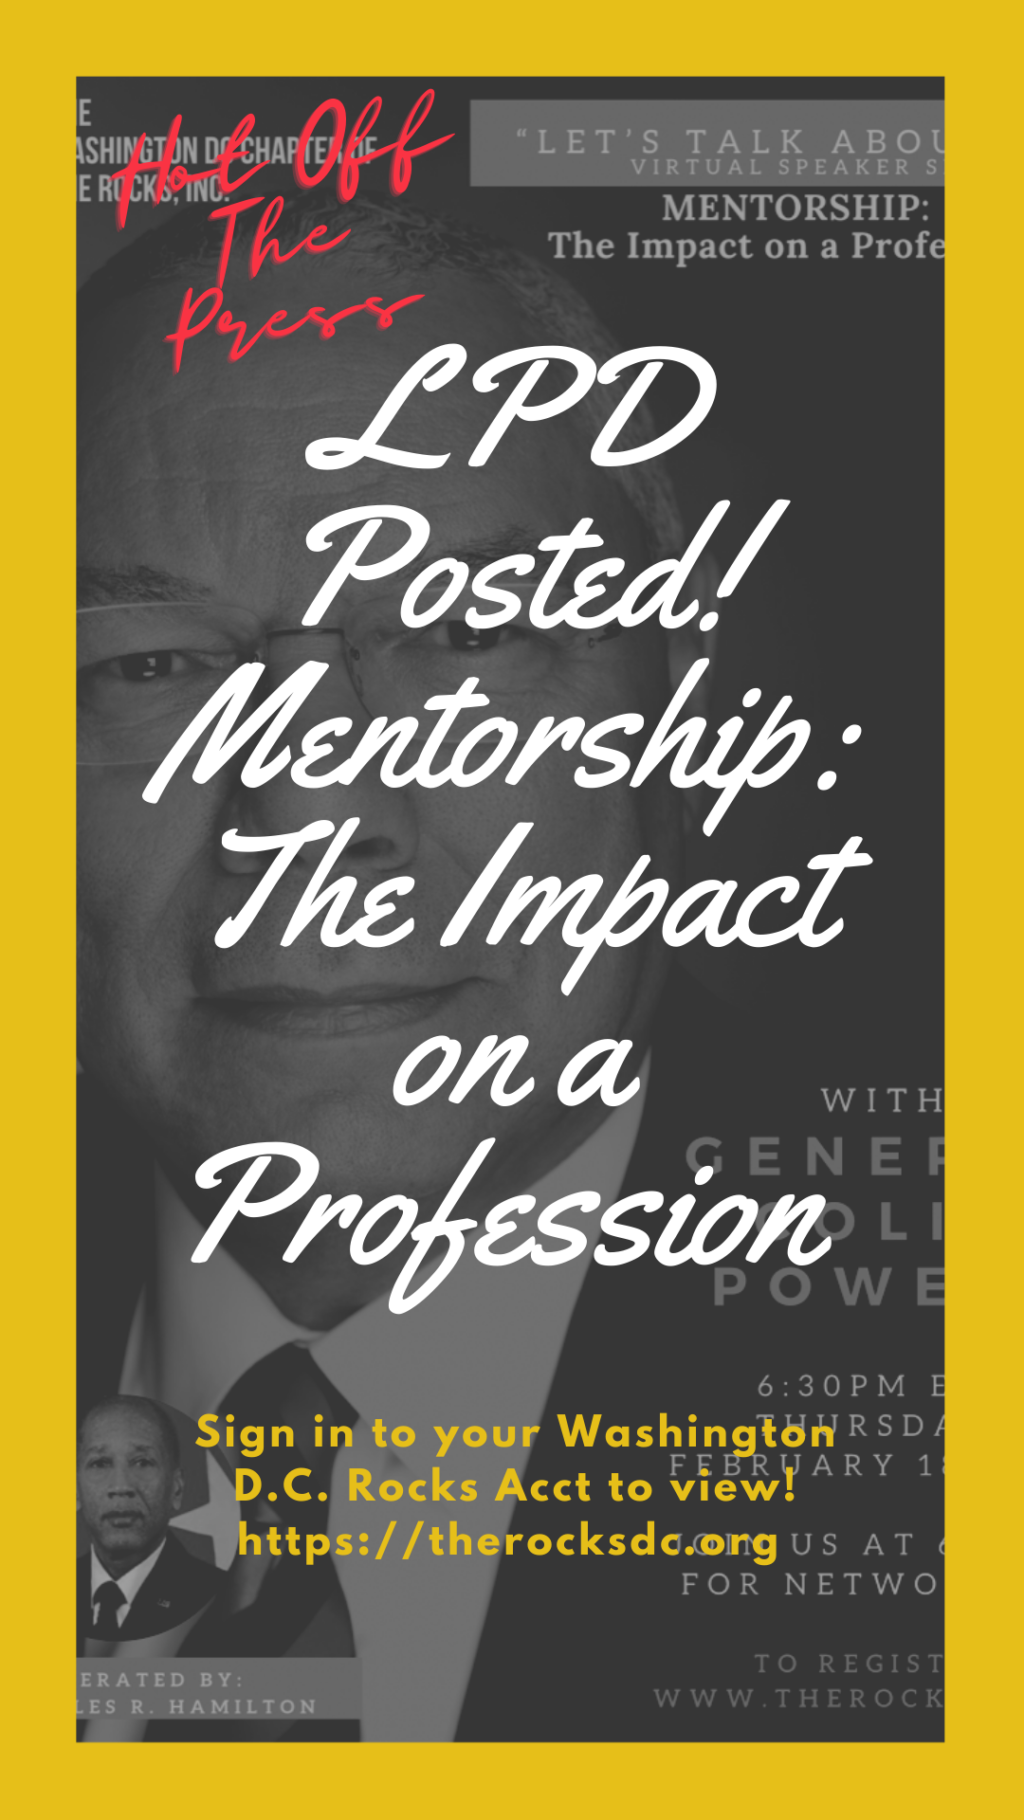 Let's Talk About It: The Impact on a Profession Video Posted Flyer